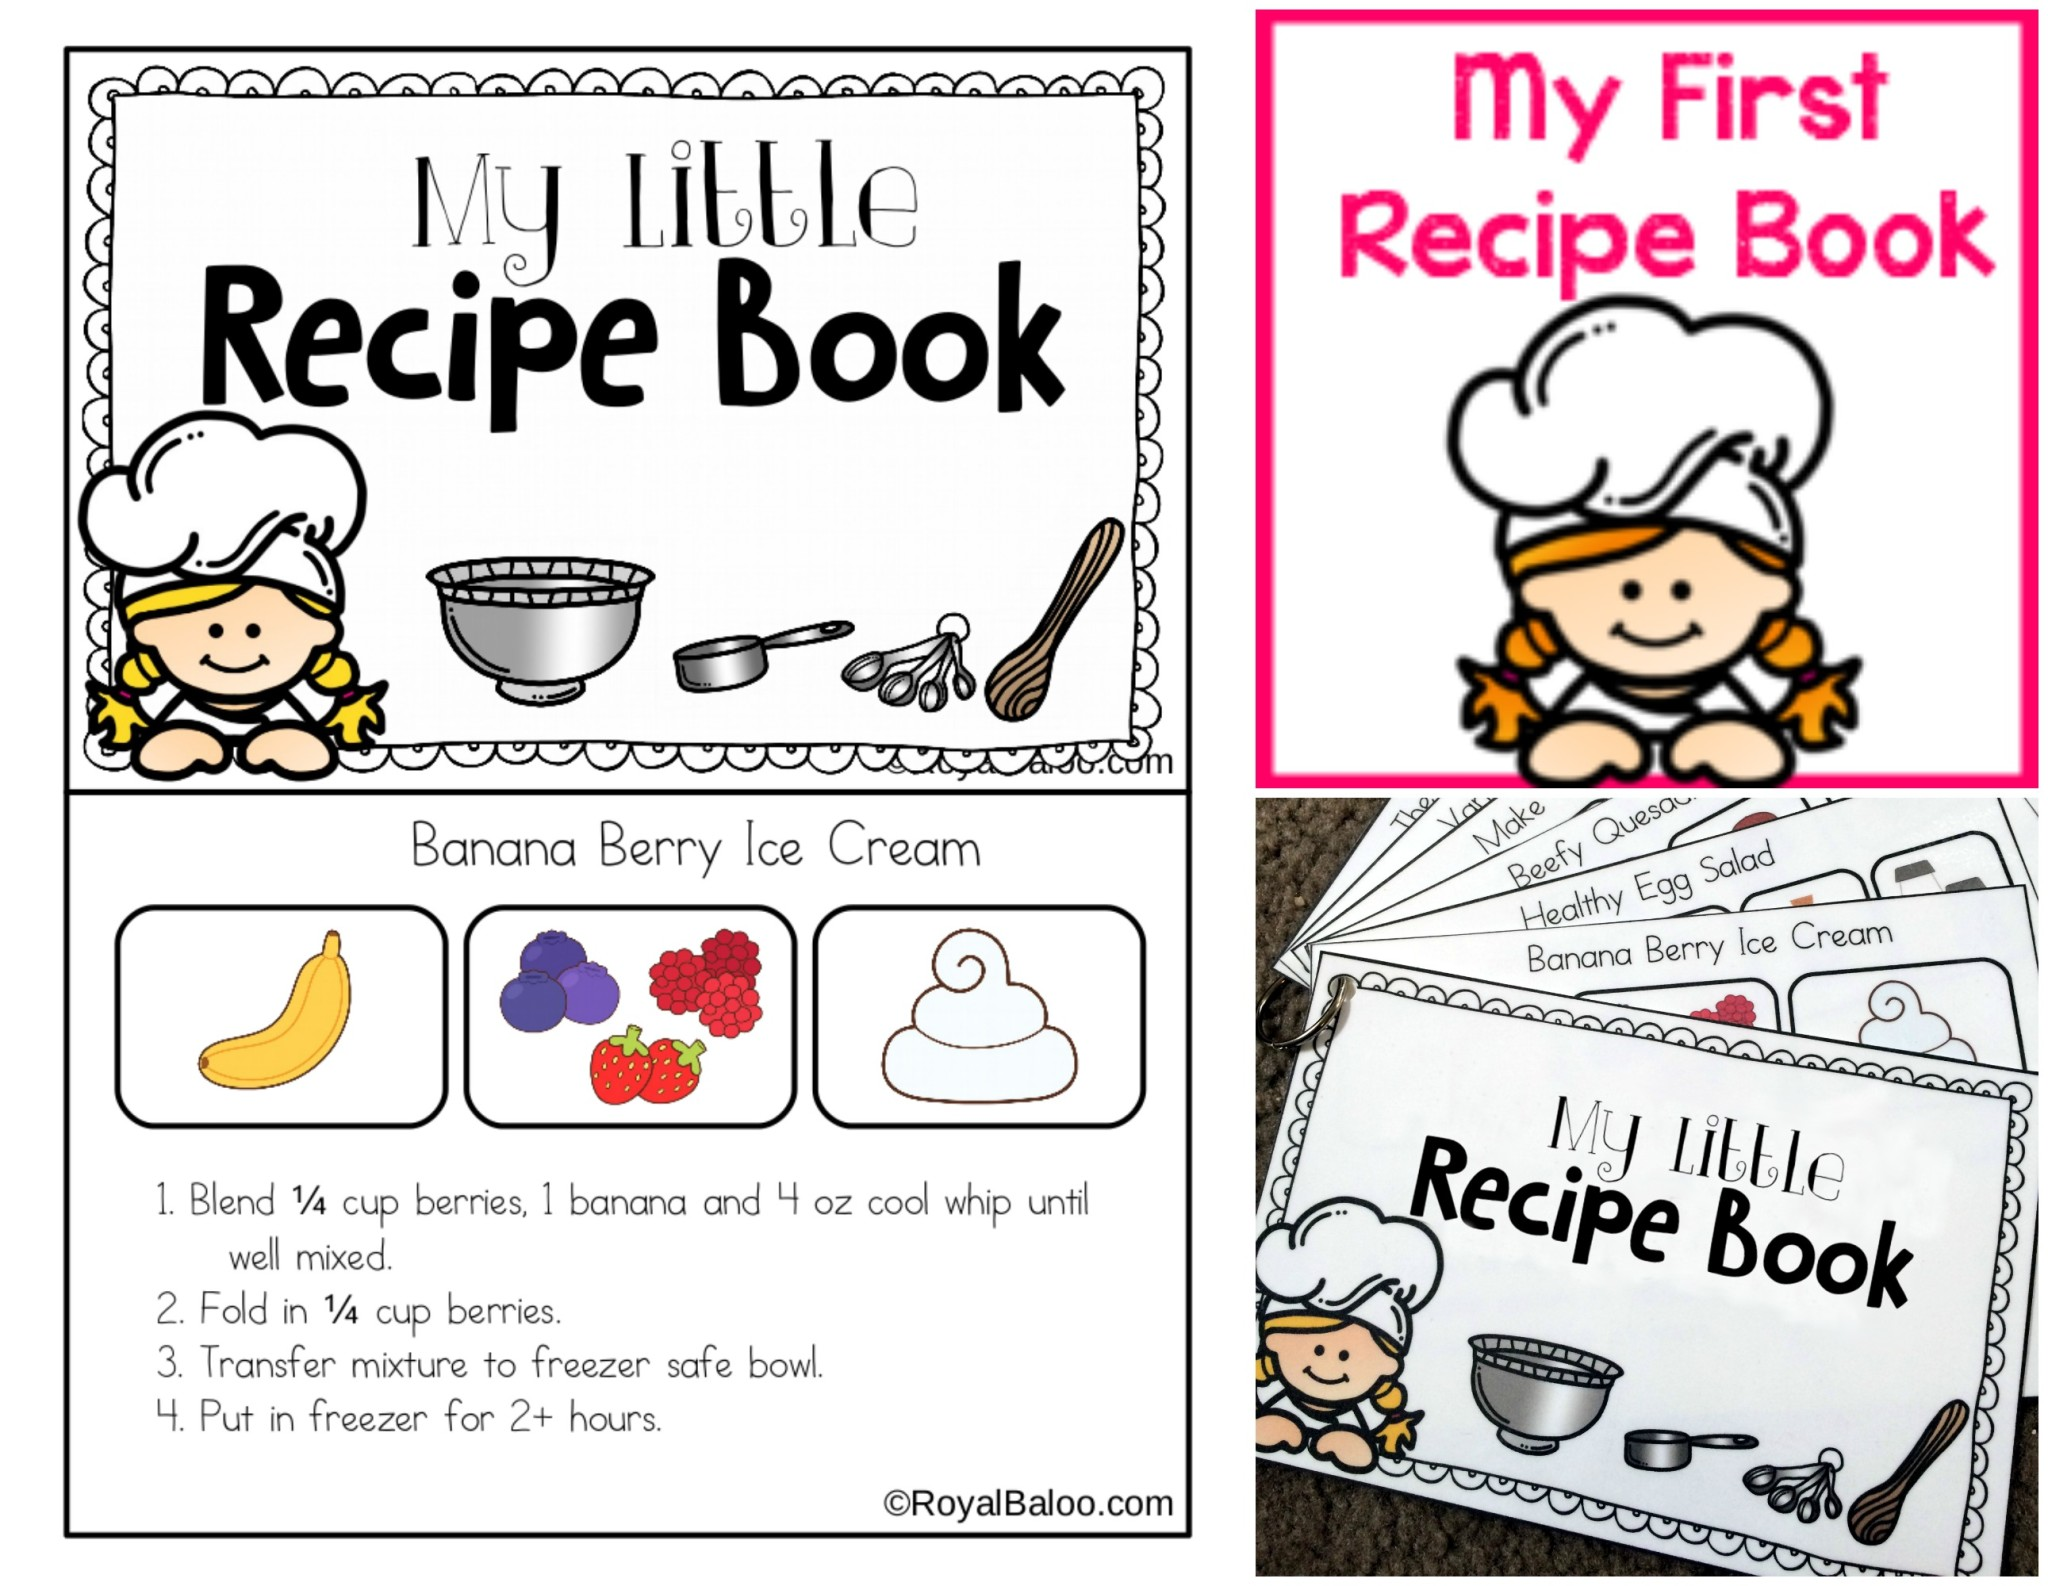 My First Recipe Book Printable For Charity Royal Baloo